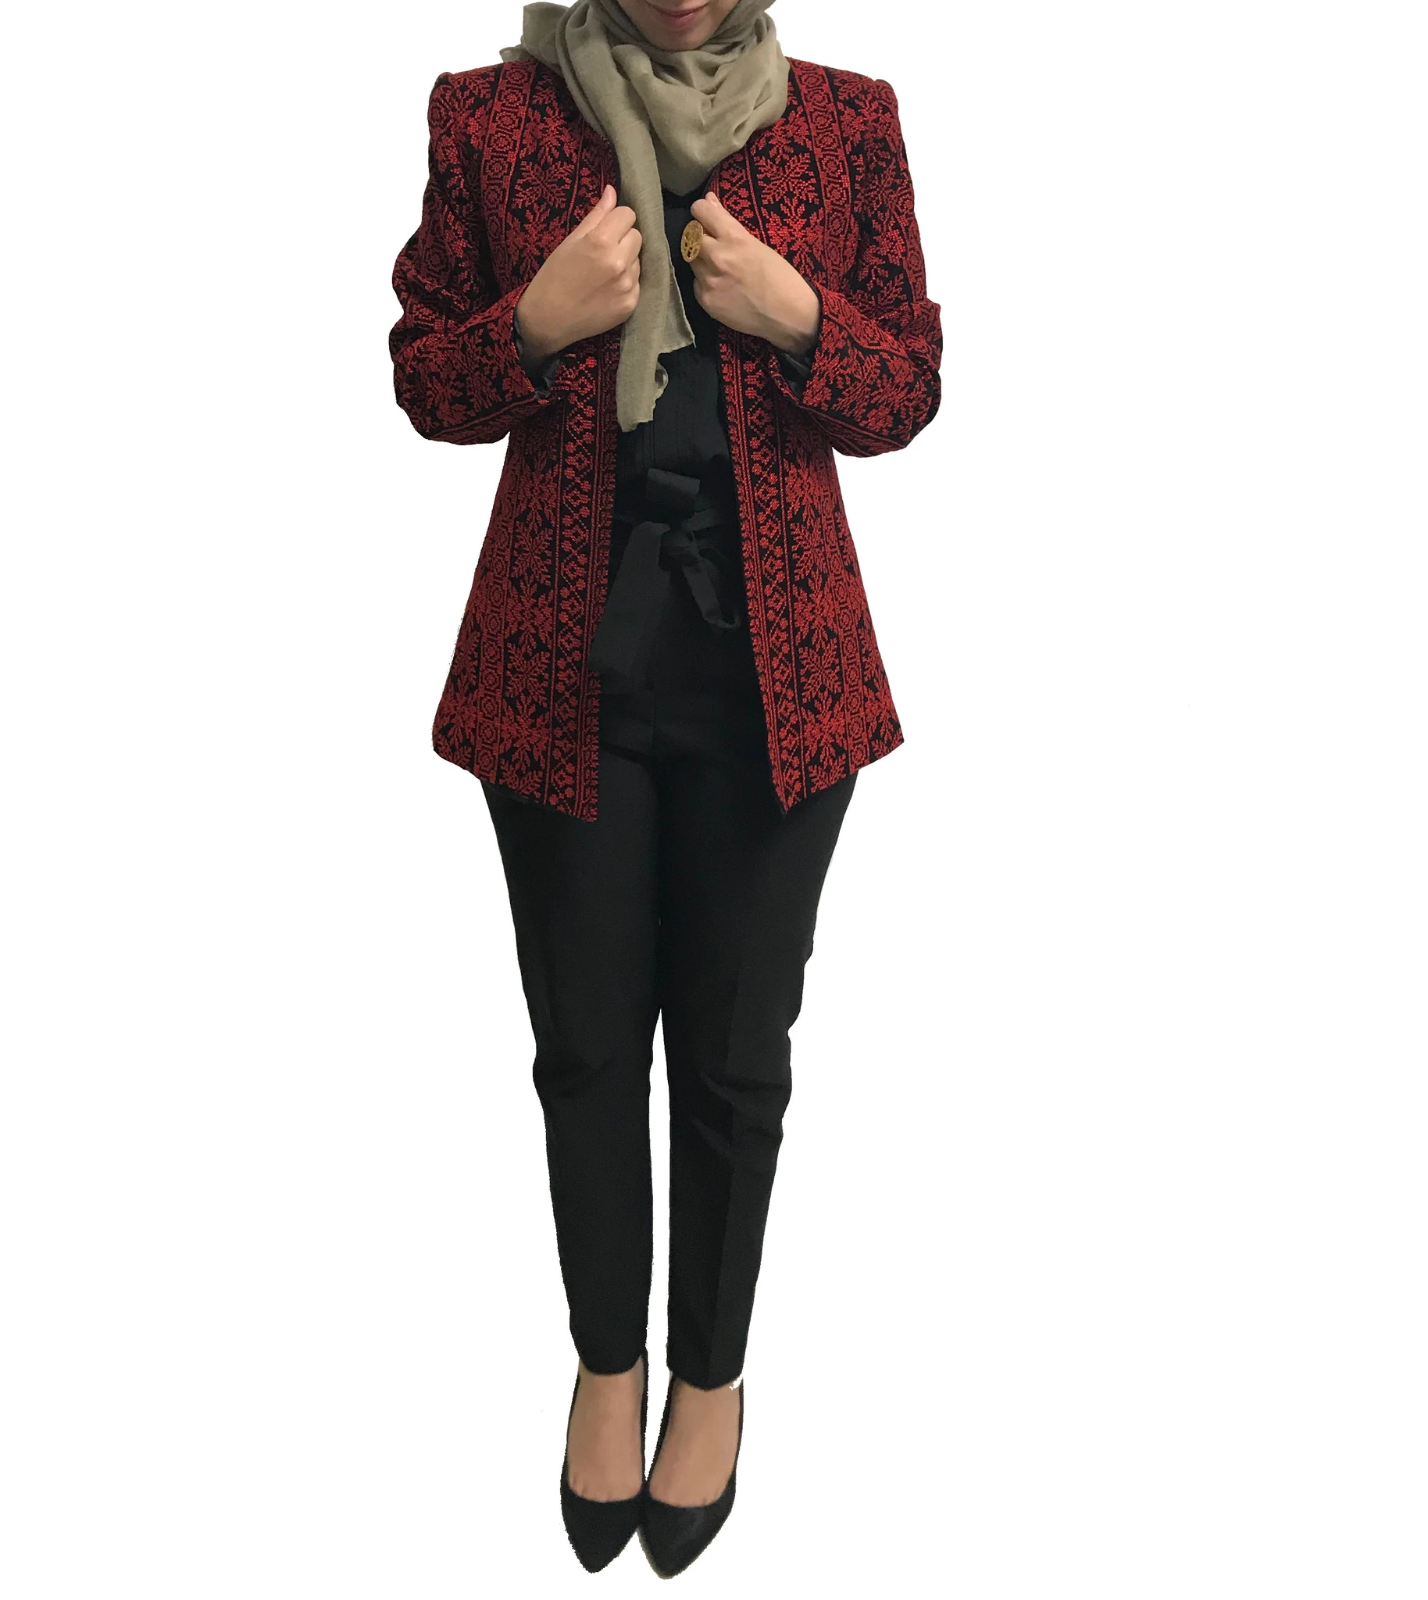 Elegant Embroidered Black Jacket Long Sleeve Traditional Red Embroidery Blazer